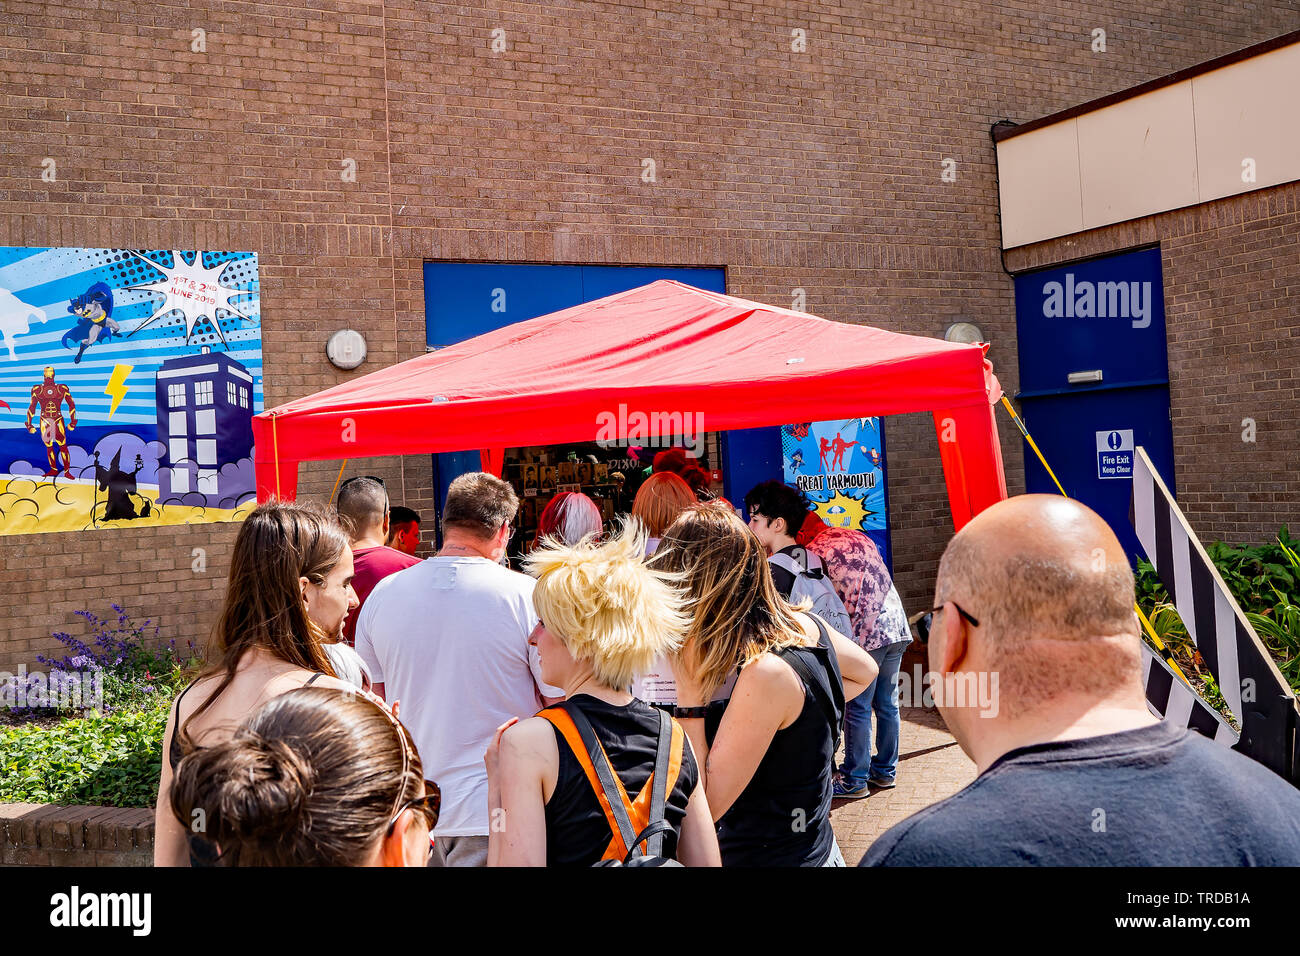 Great Yarmouth Comicon 2019 – Comicon goers and attendees queuing up to enter the Comicon event in the seaside town of Great Yarmouth, Norfolk - Stock Image